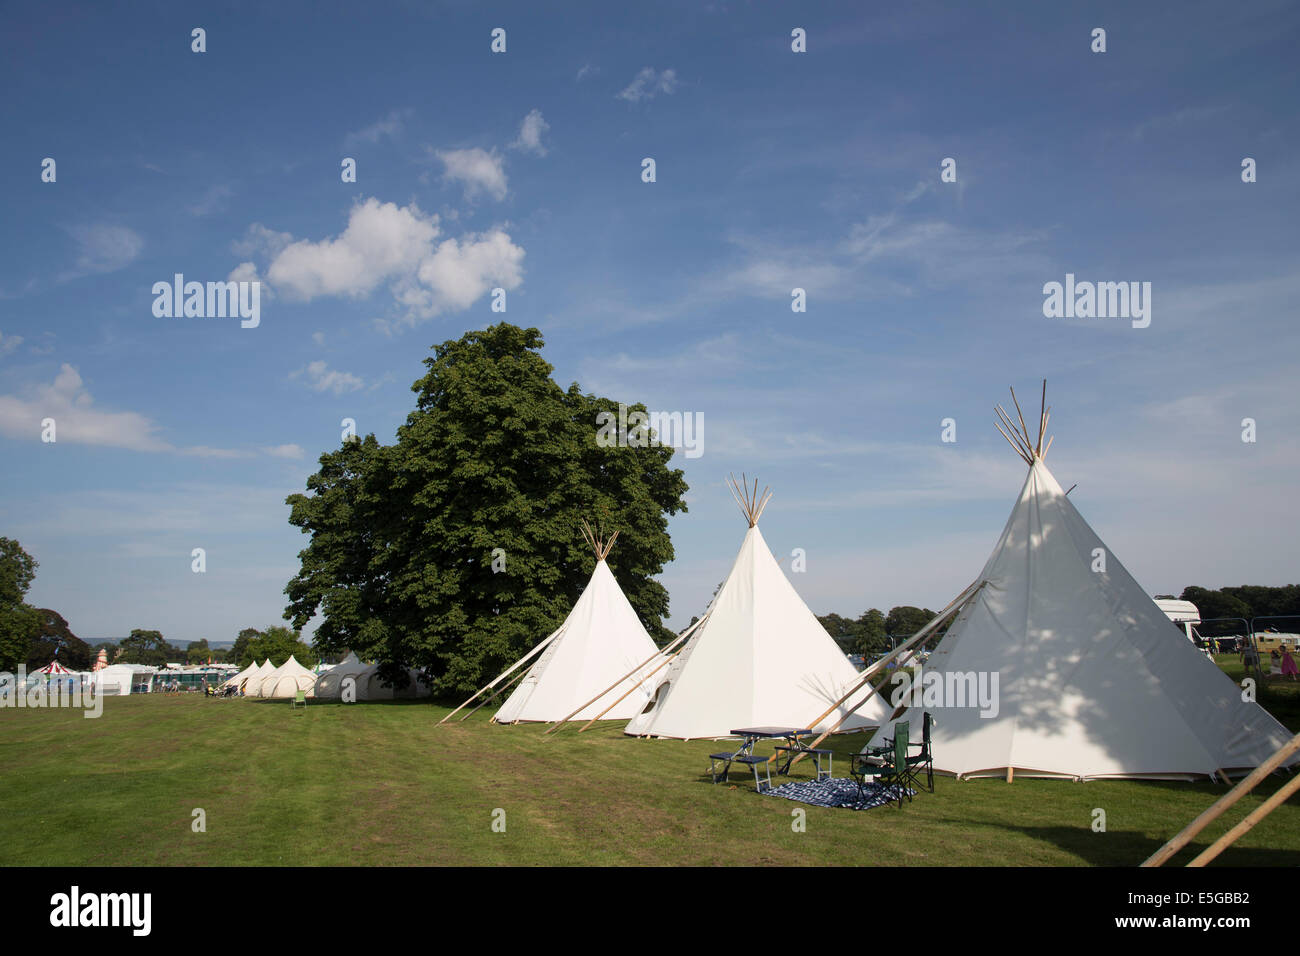 Tipi camping field, campsite, at Deer Shed festival. Glamping in teepees. - Stock Image